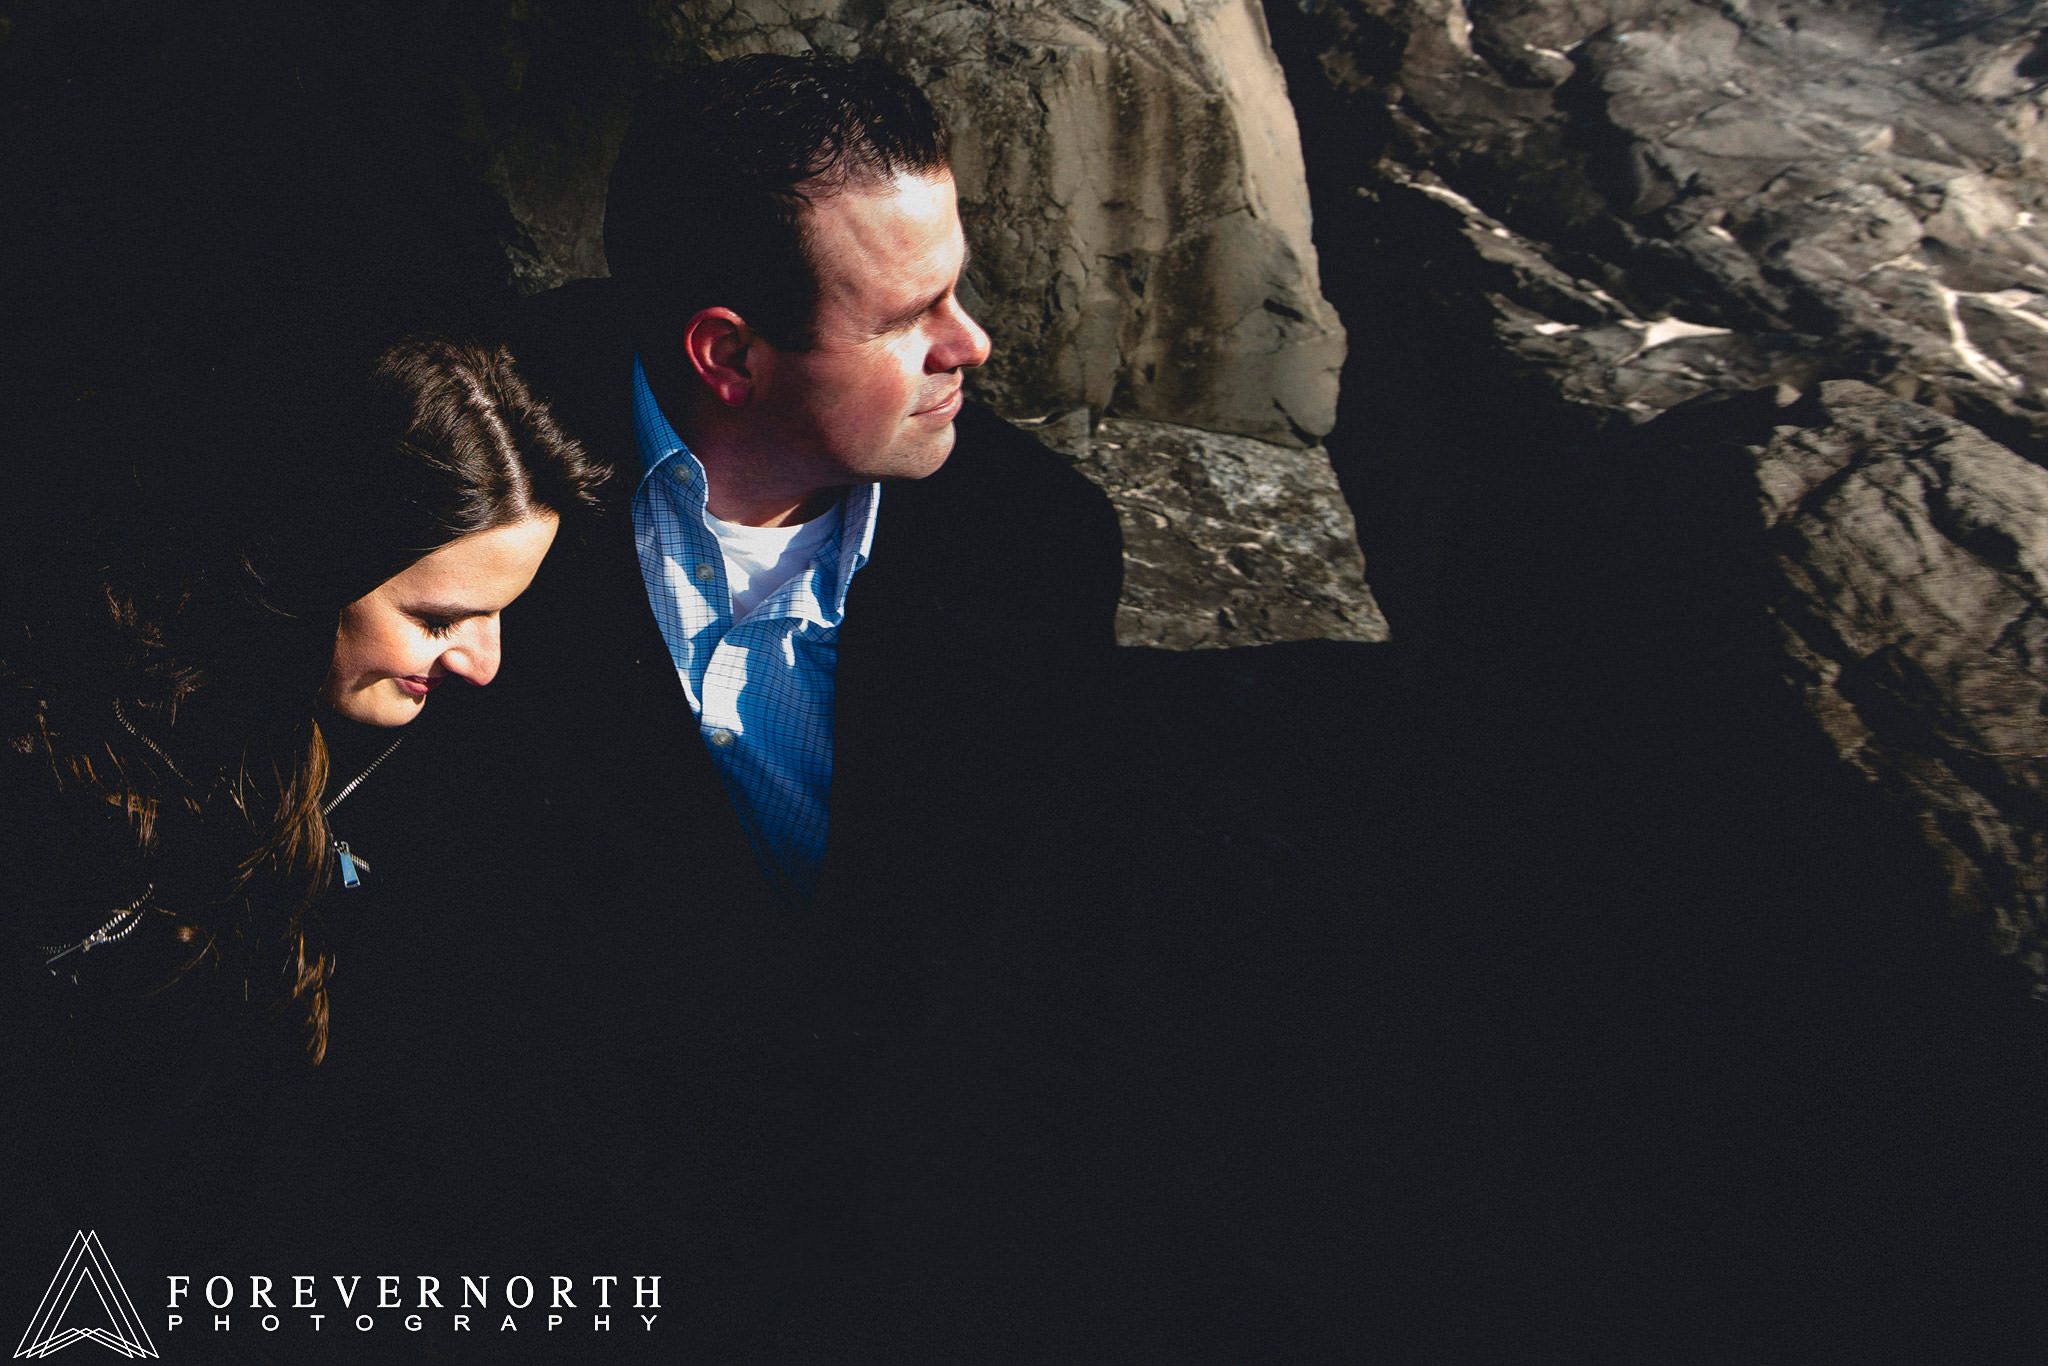 Schall-Forever-North-Photography-Proposal-Engagement-Photographer-Manasquan-Beach-27.JPG